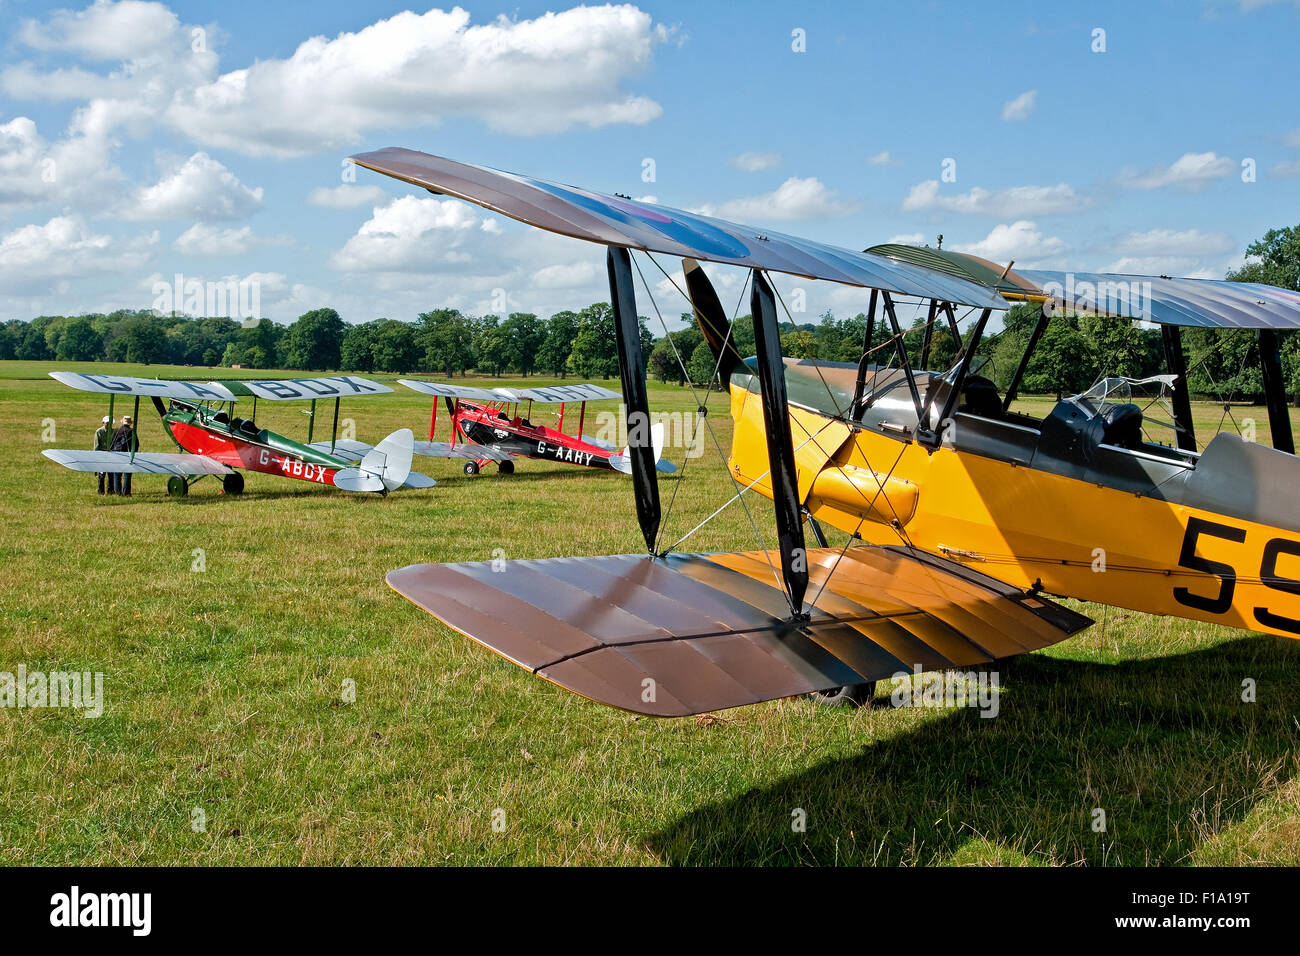 4a9e6ad3d Two DH.60 de Havilland Gypsy Moths framed by the wings of a DH.82 Tiger Moth  at the International DH Moth Rally at Woburn Abbey